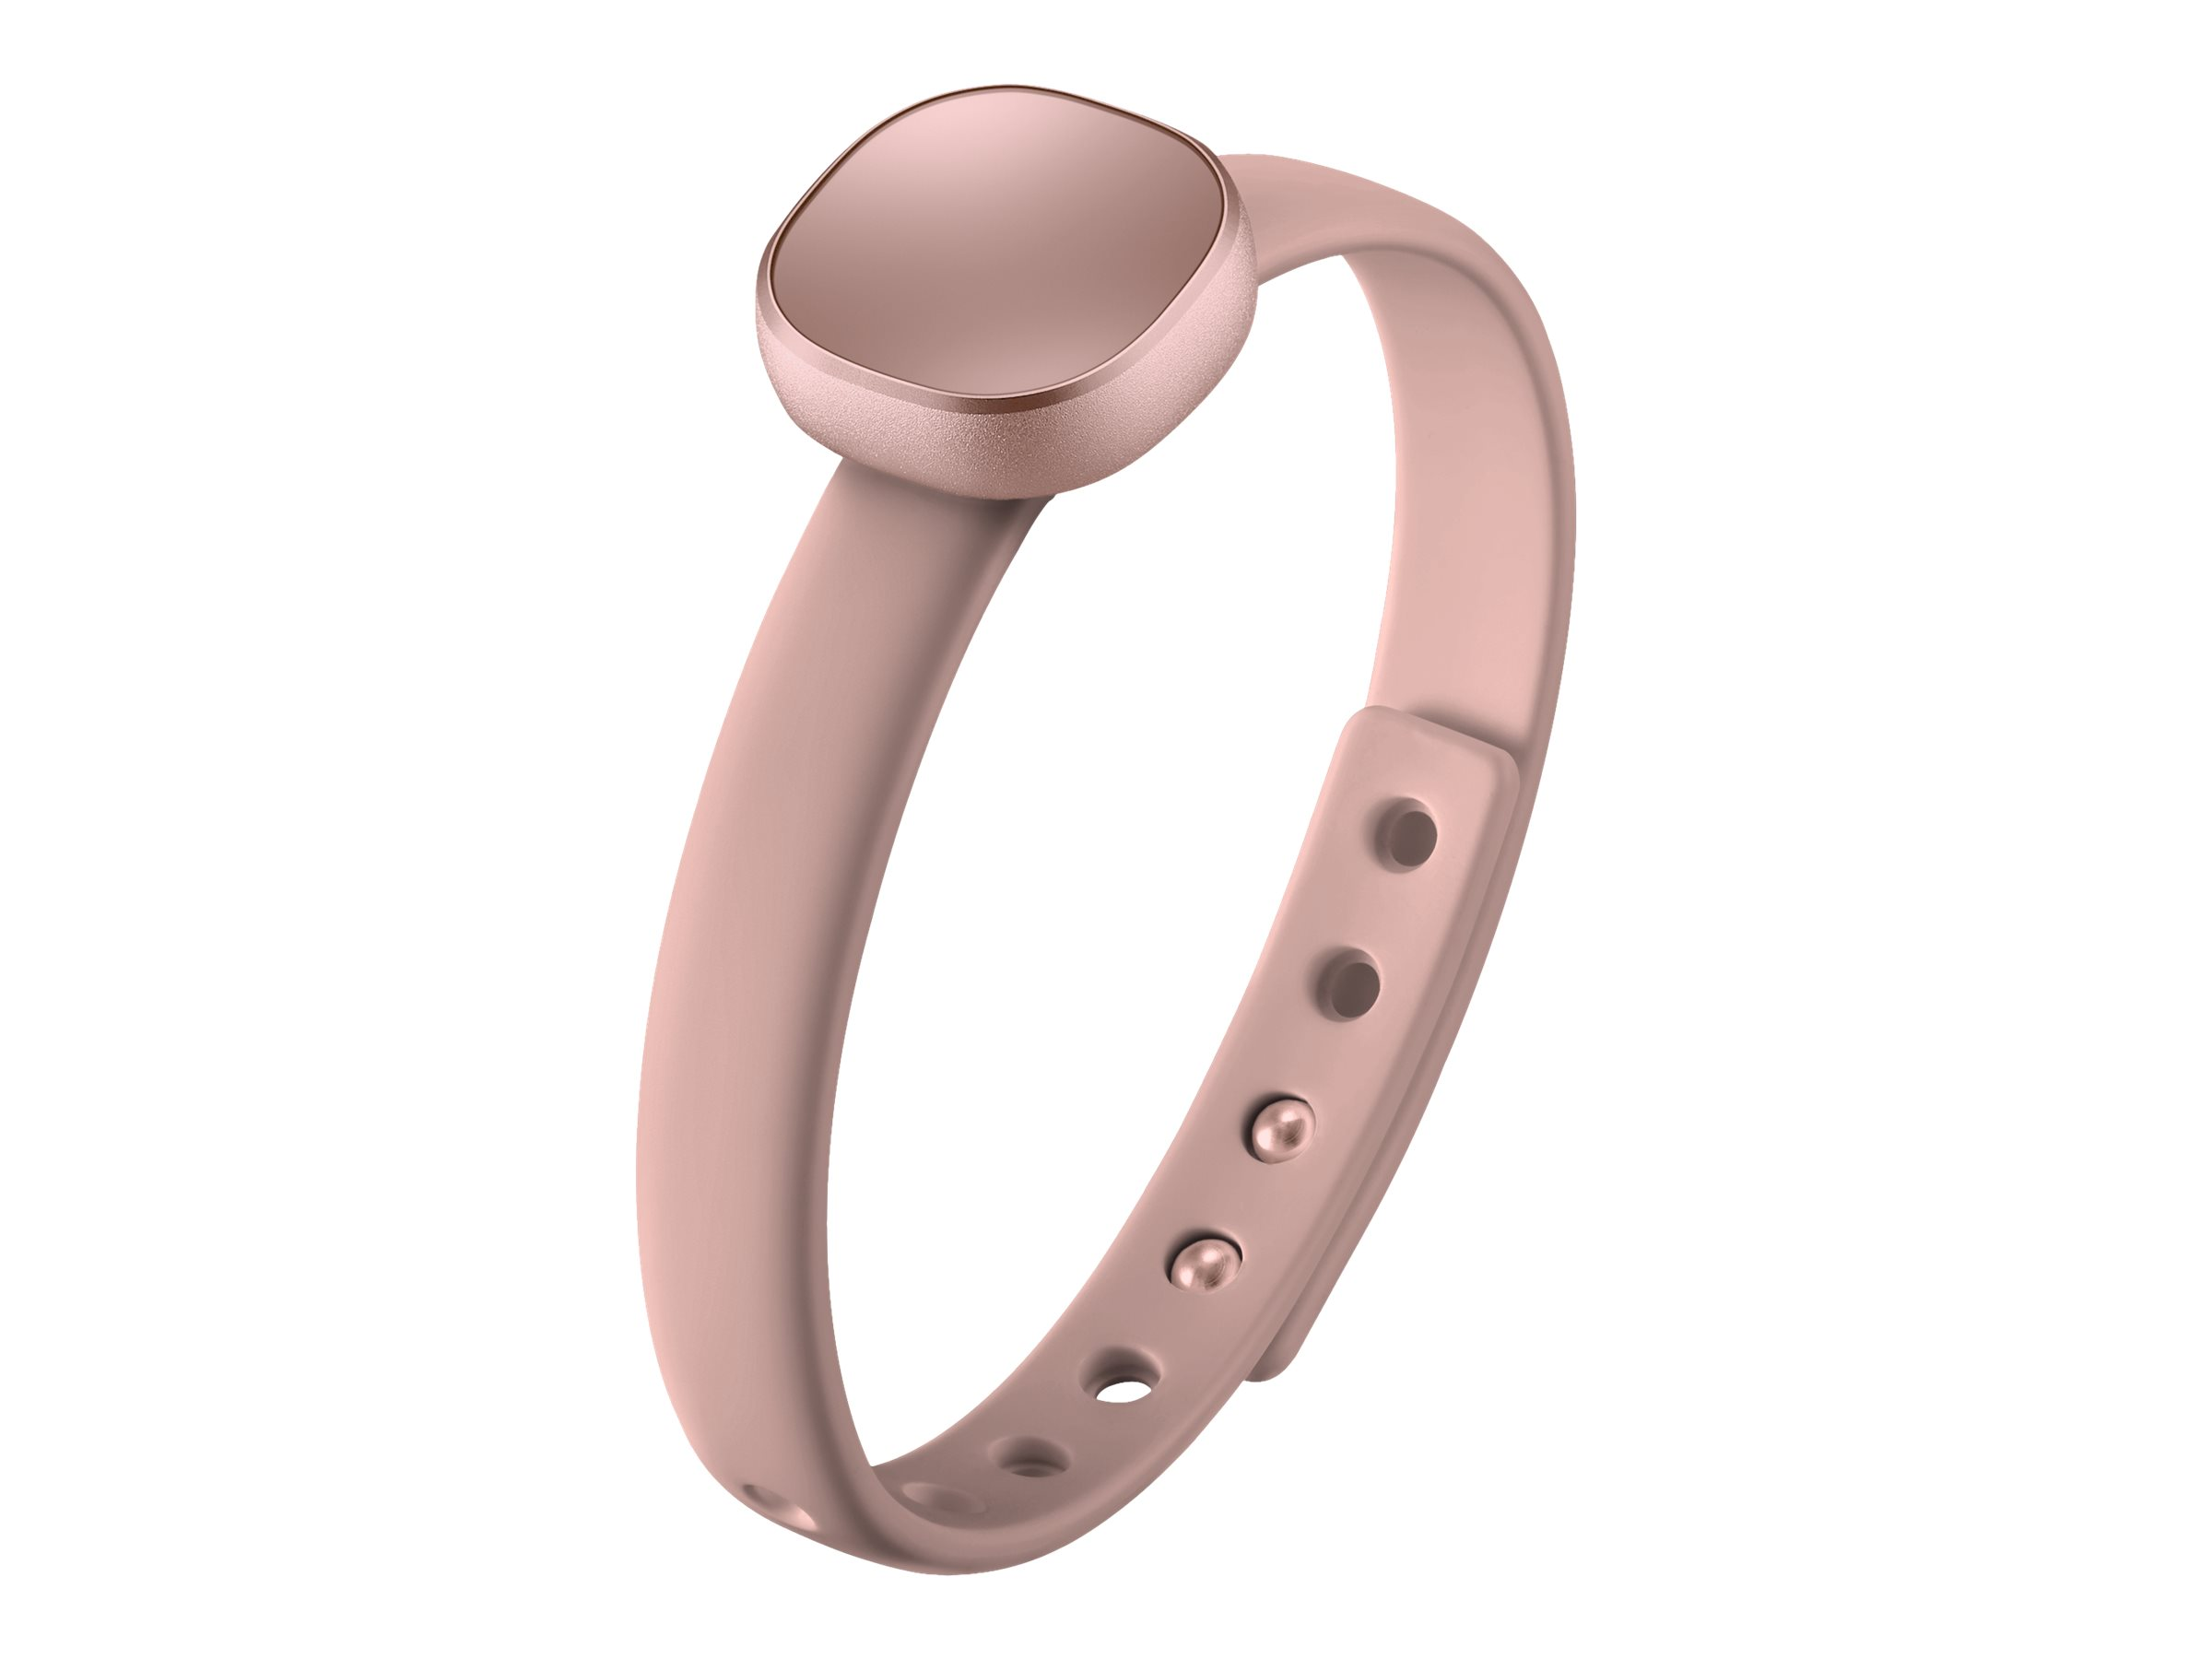 Samsung Smart Charm Activity Tracker with Band - Rose Quartz